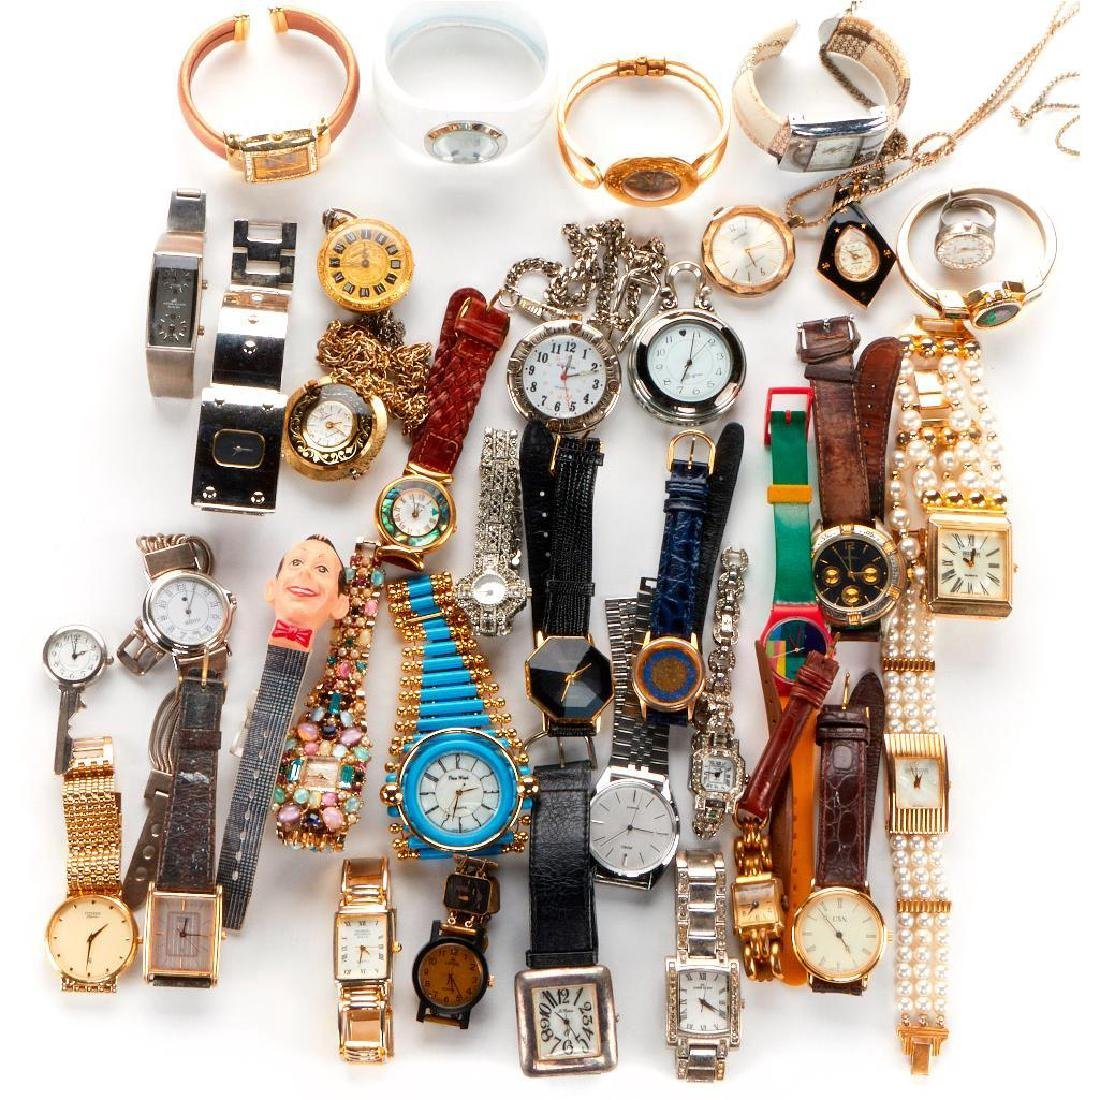 Collection of 120+ wristwatches